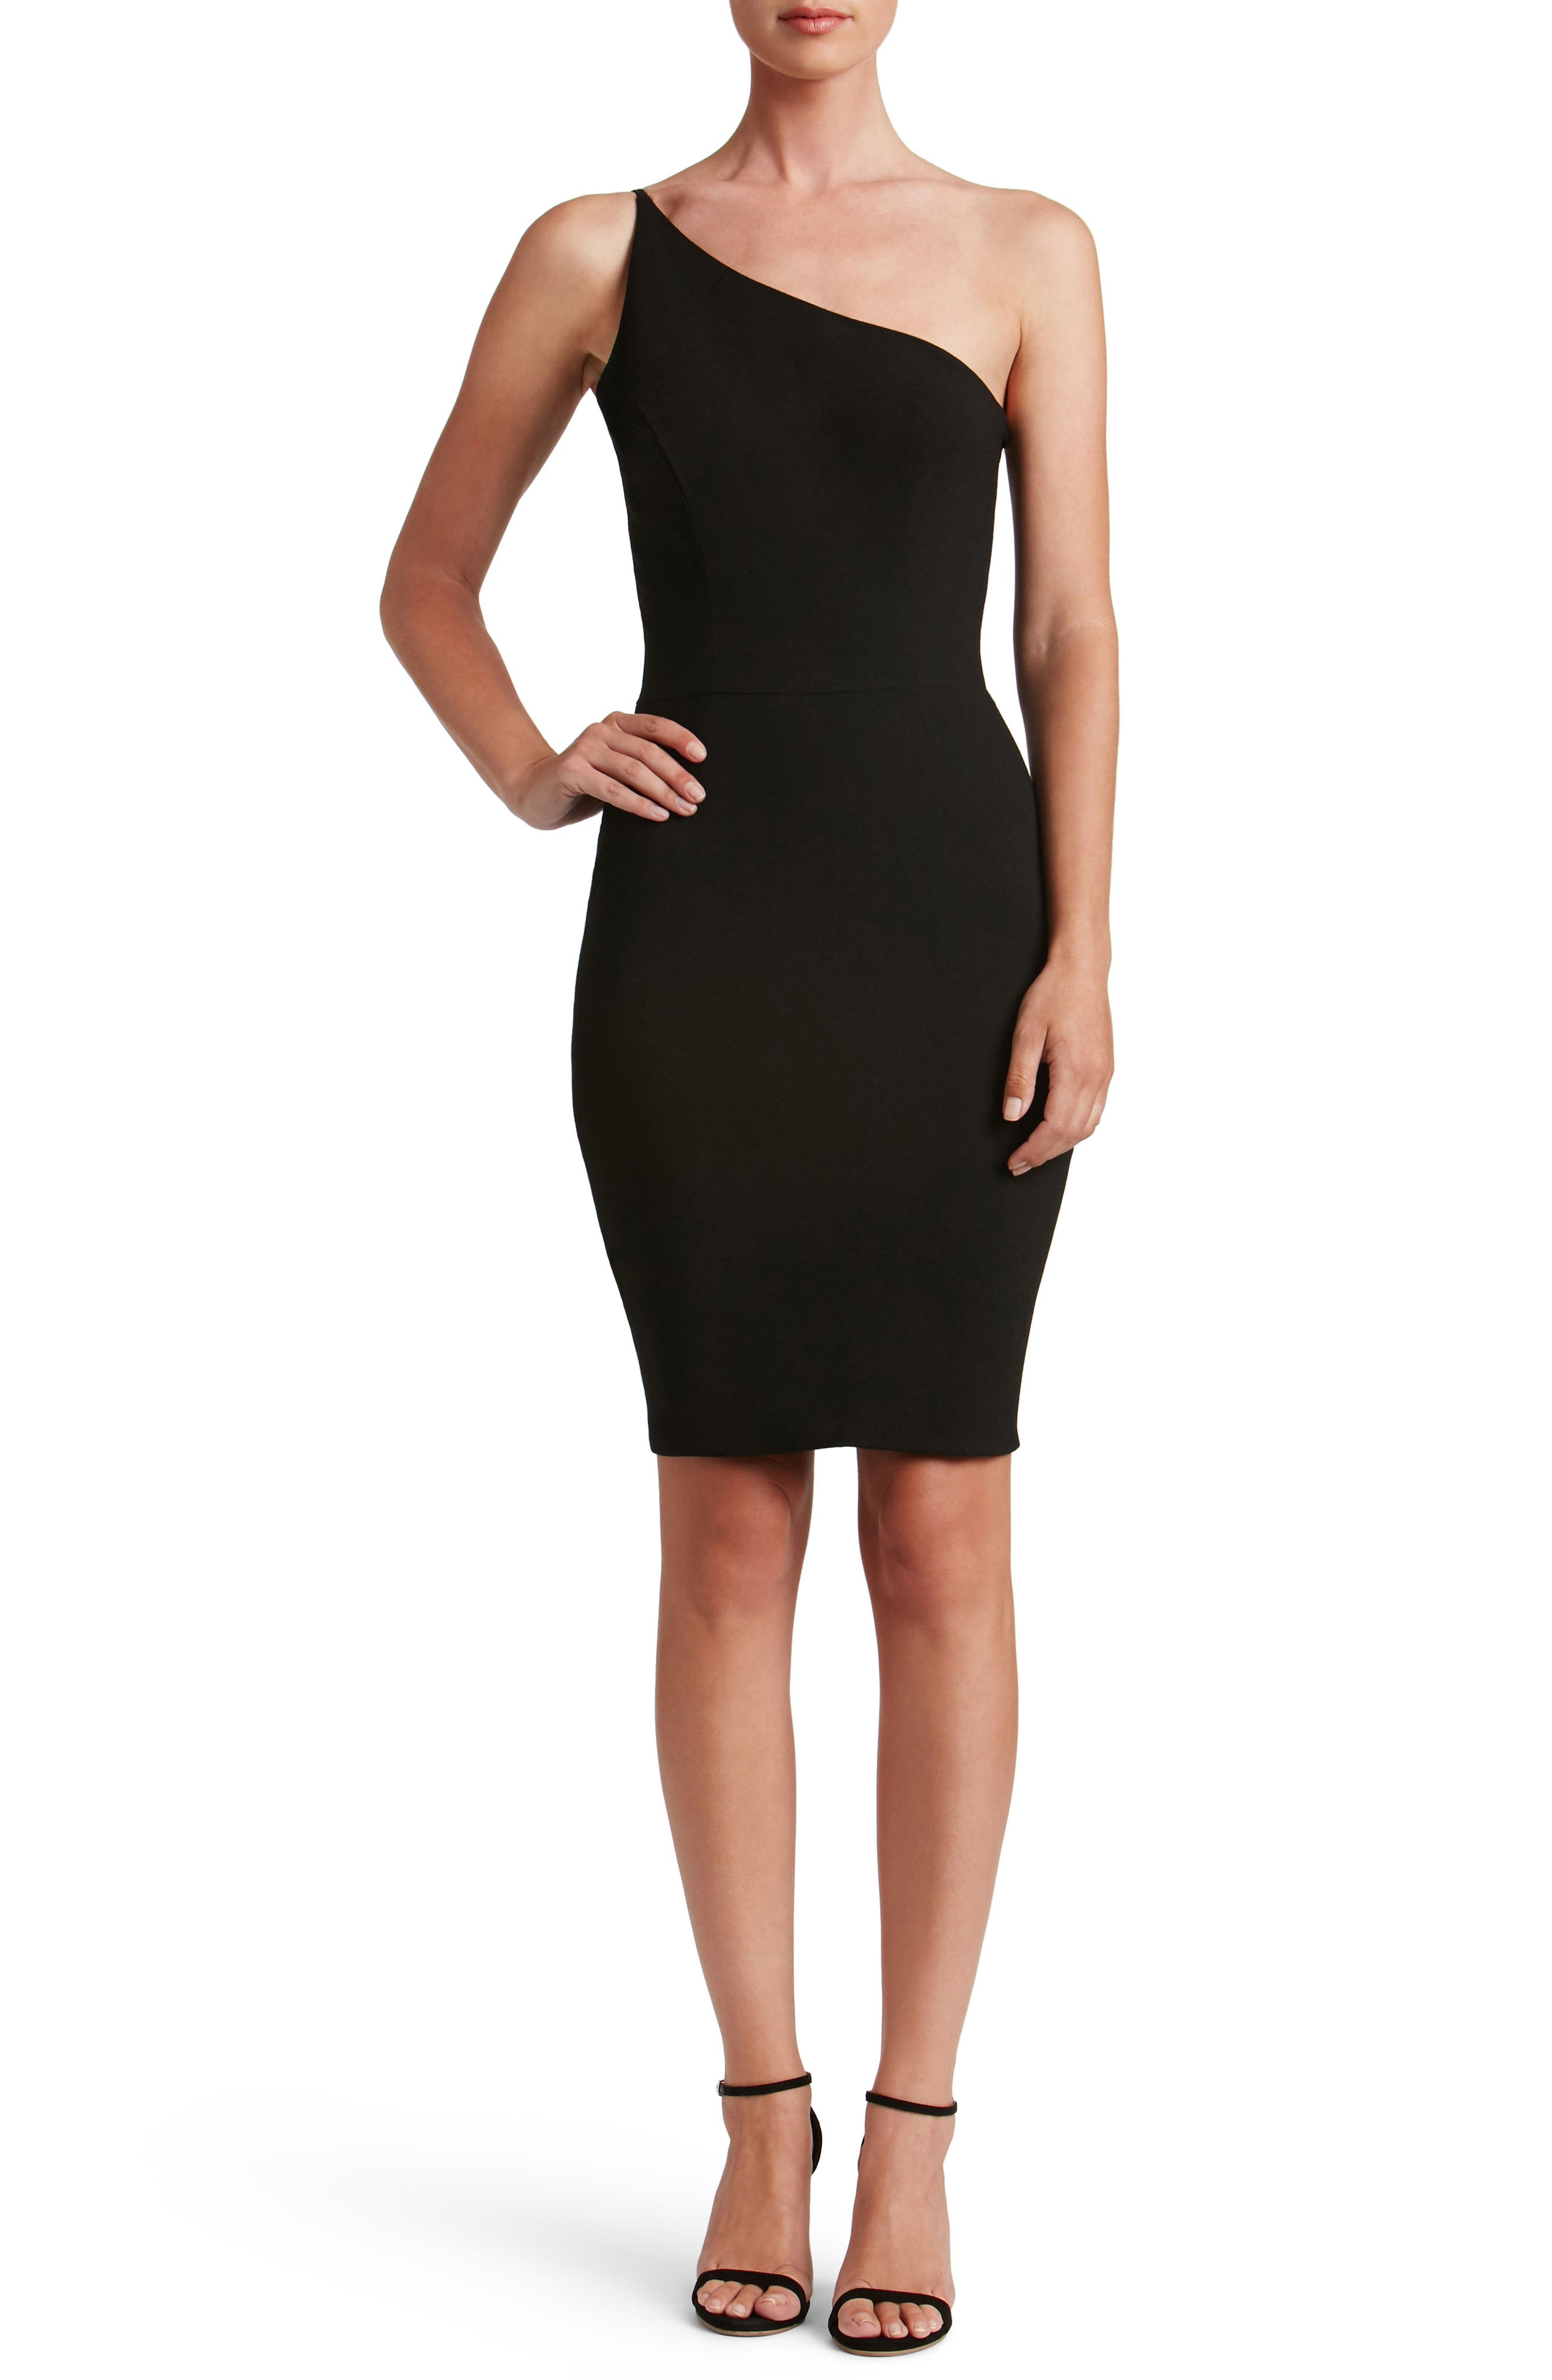 Jennifer One-Shoulder Body-Con Dress,                             Main thumbnail 1, color,                             001